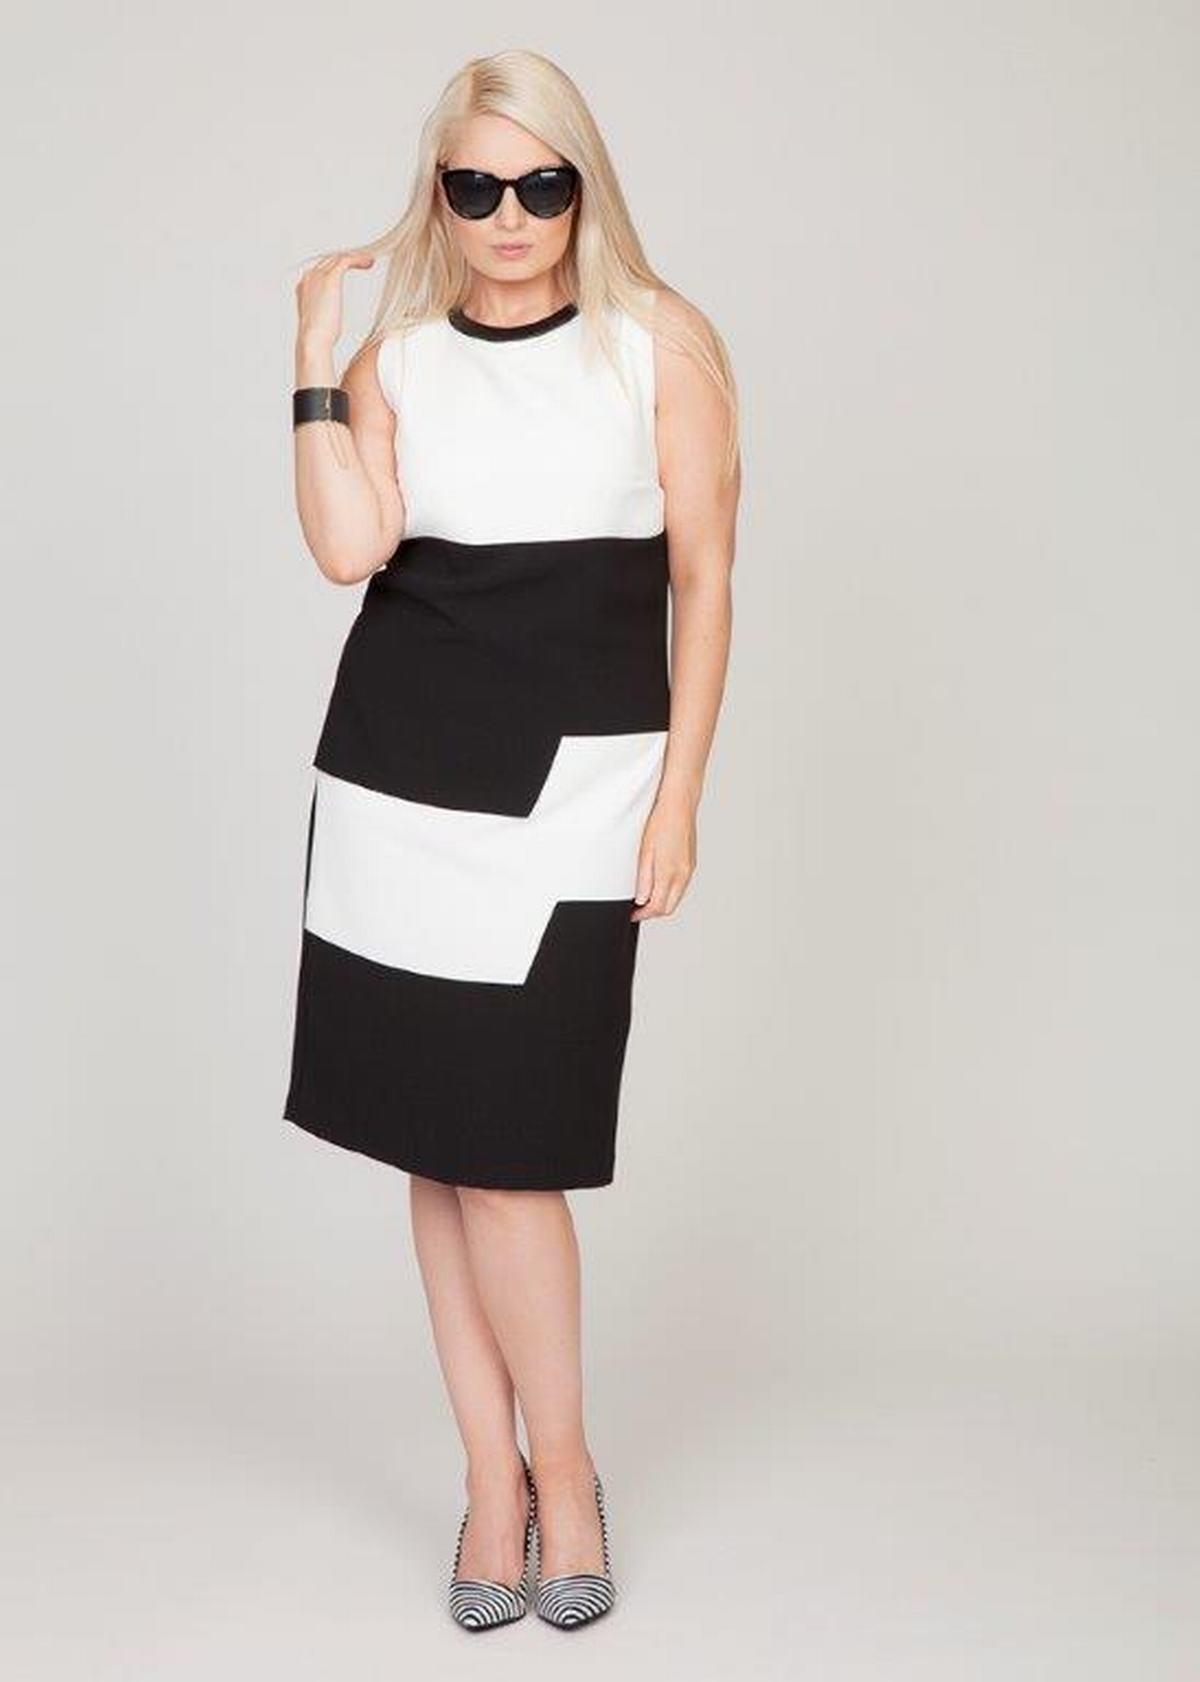 Black Personal Choice Black And White Block Step Dress